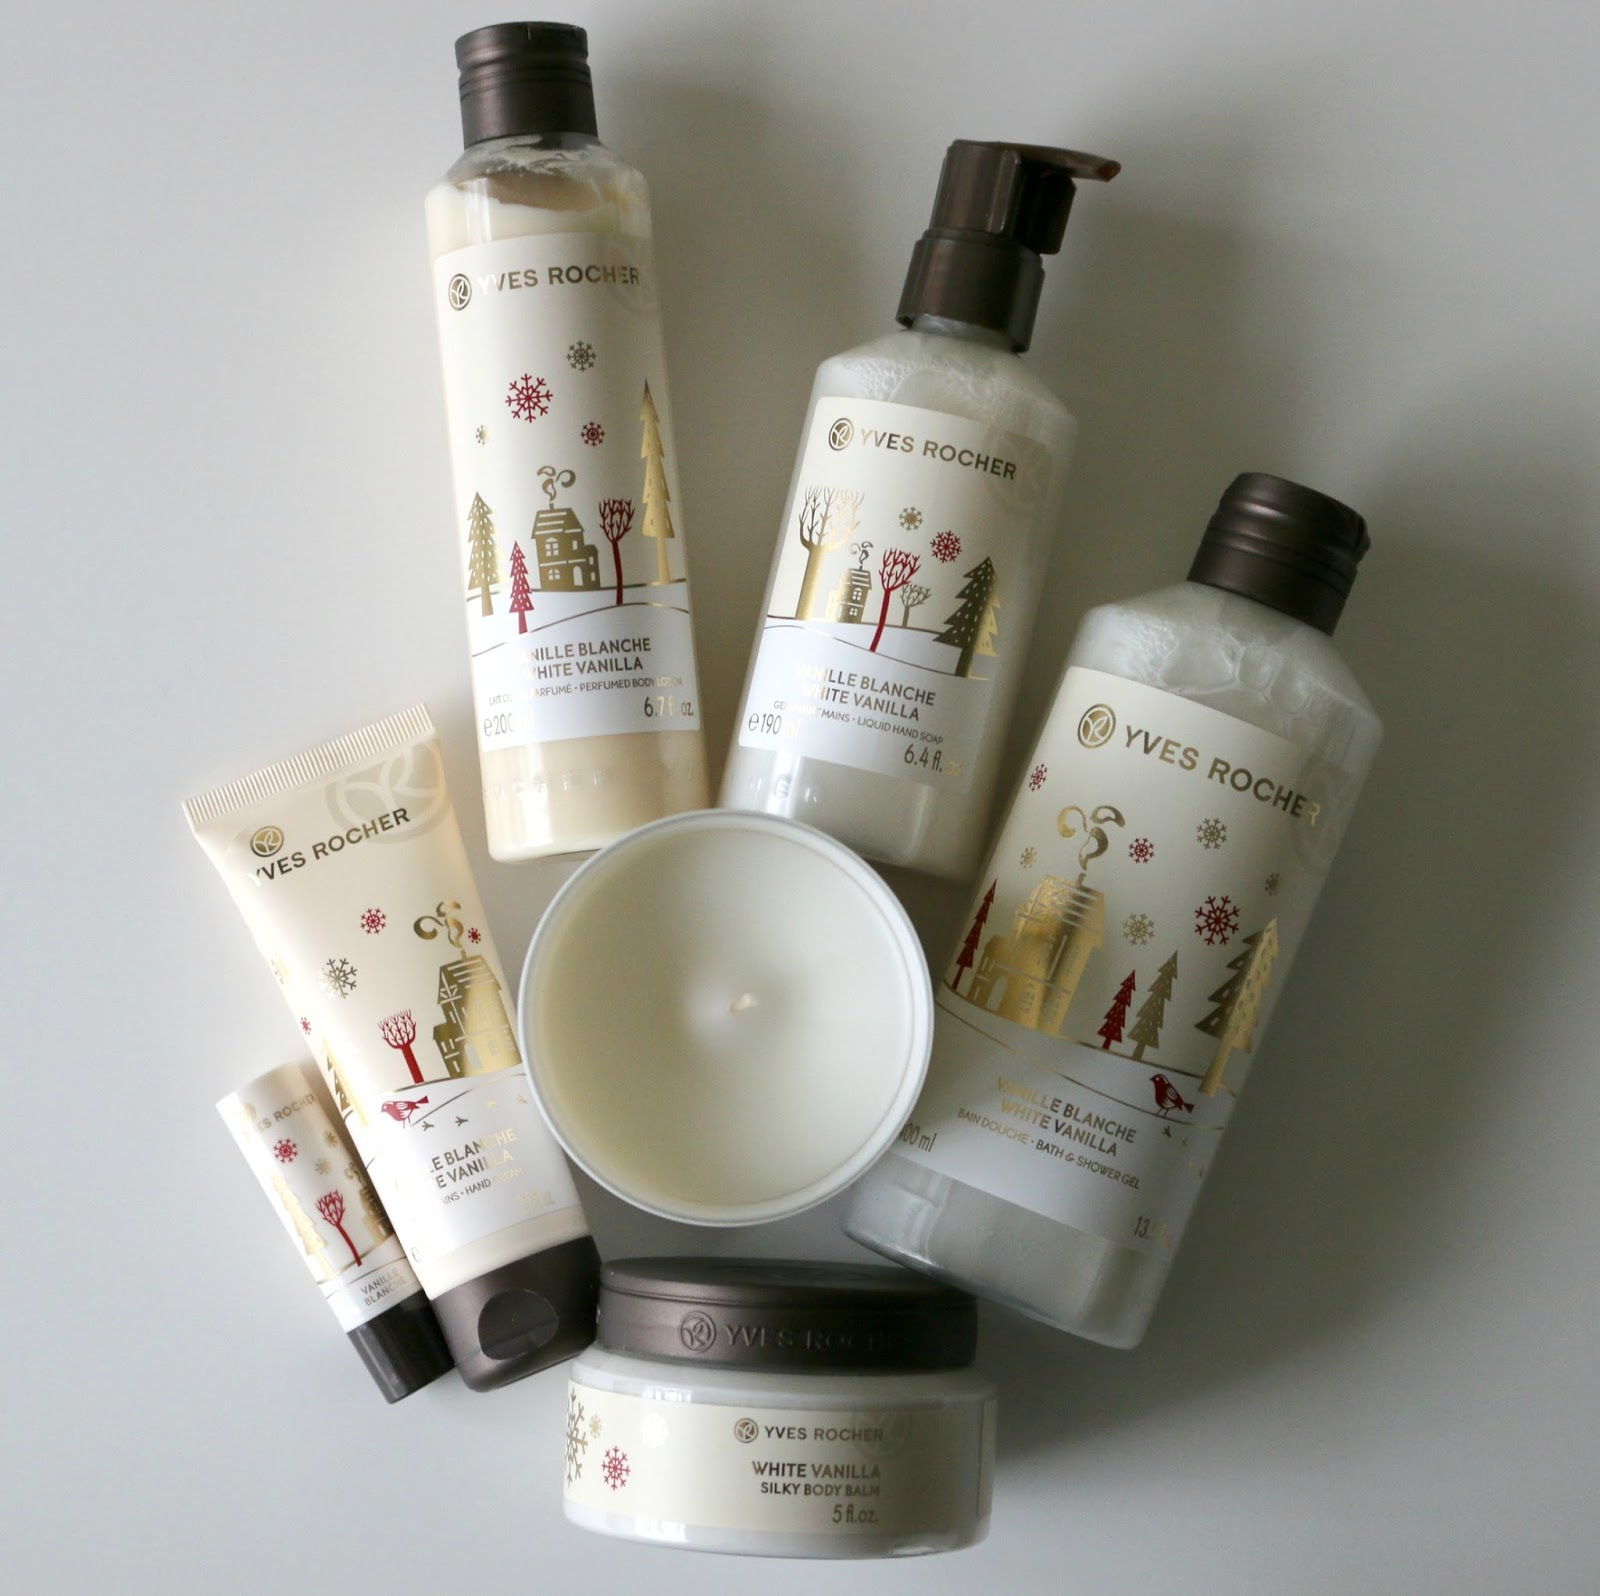 Yves Rocher White Vanilla Bath & Body Christmas Collection